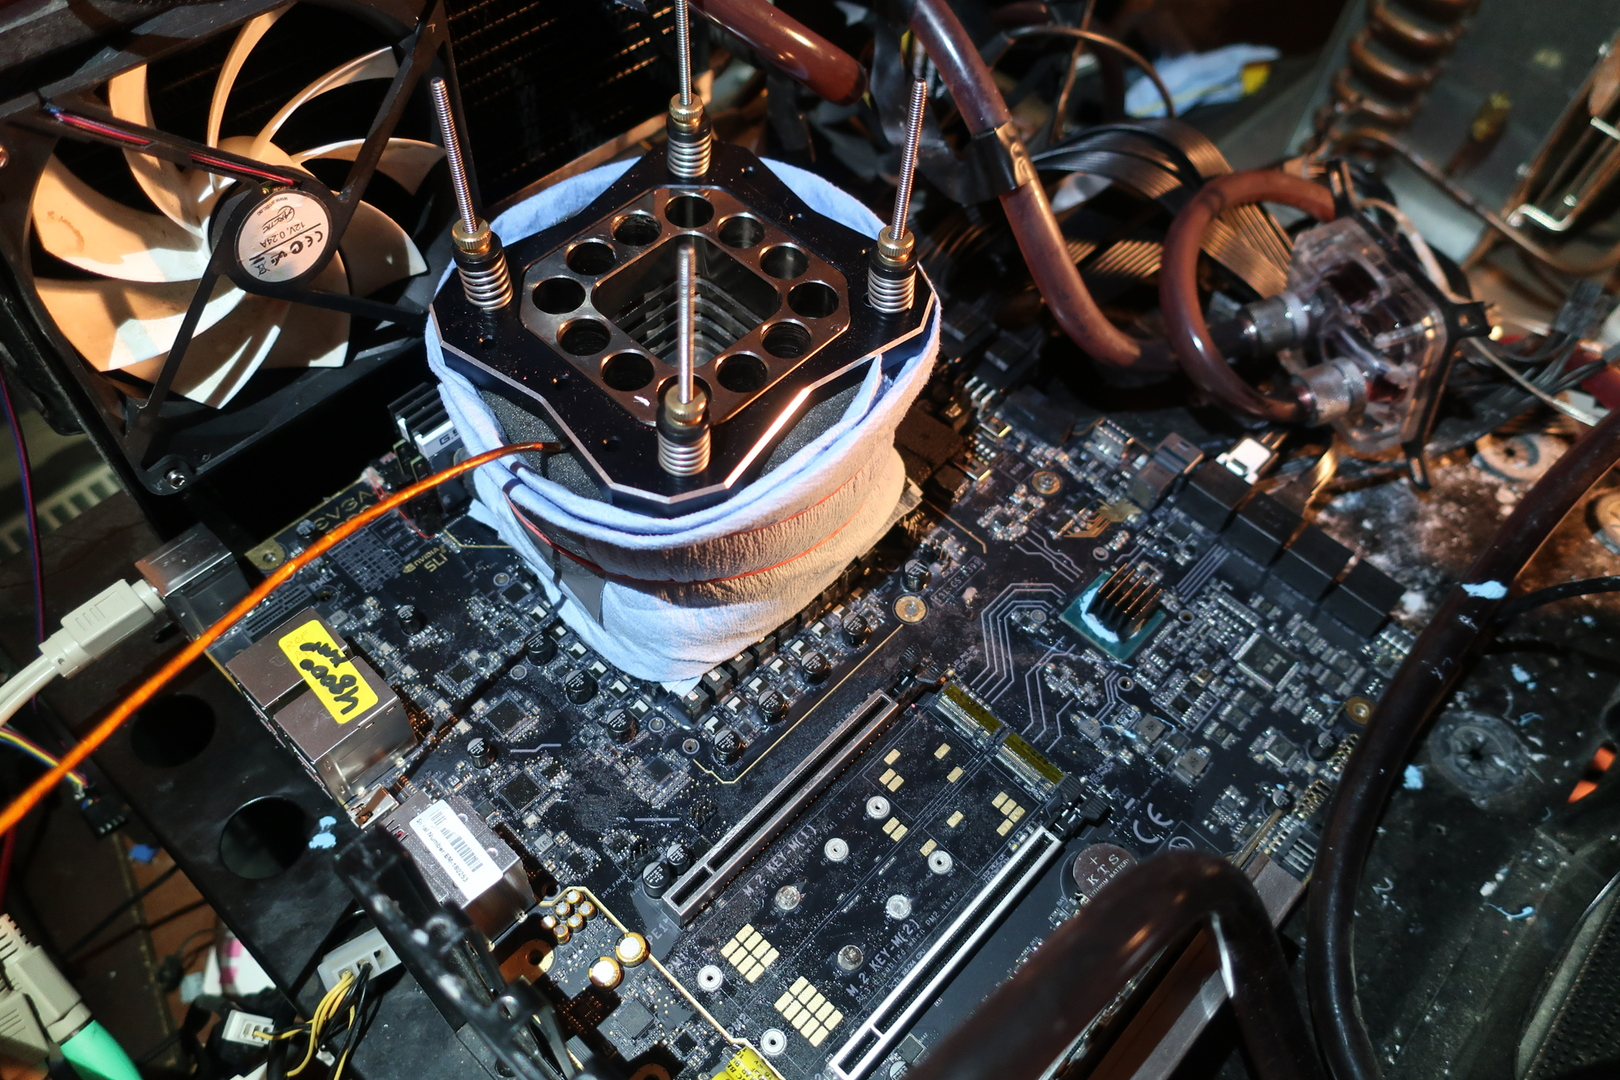 Overclocked to nearly 7 GHz Intel Core i9-9900K updated